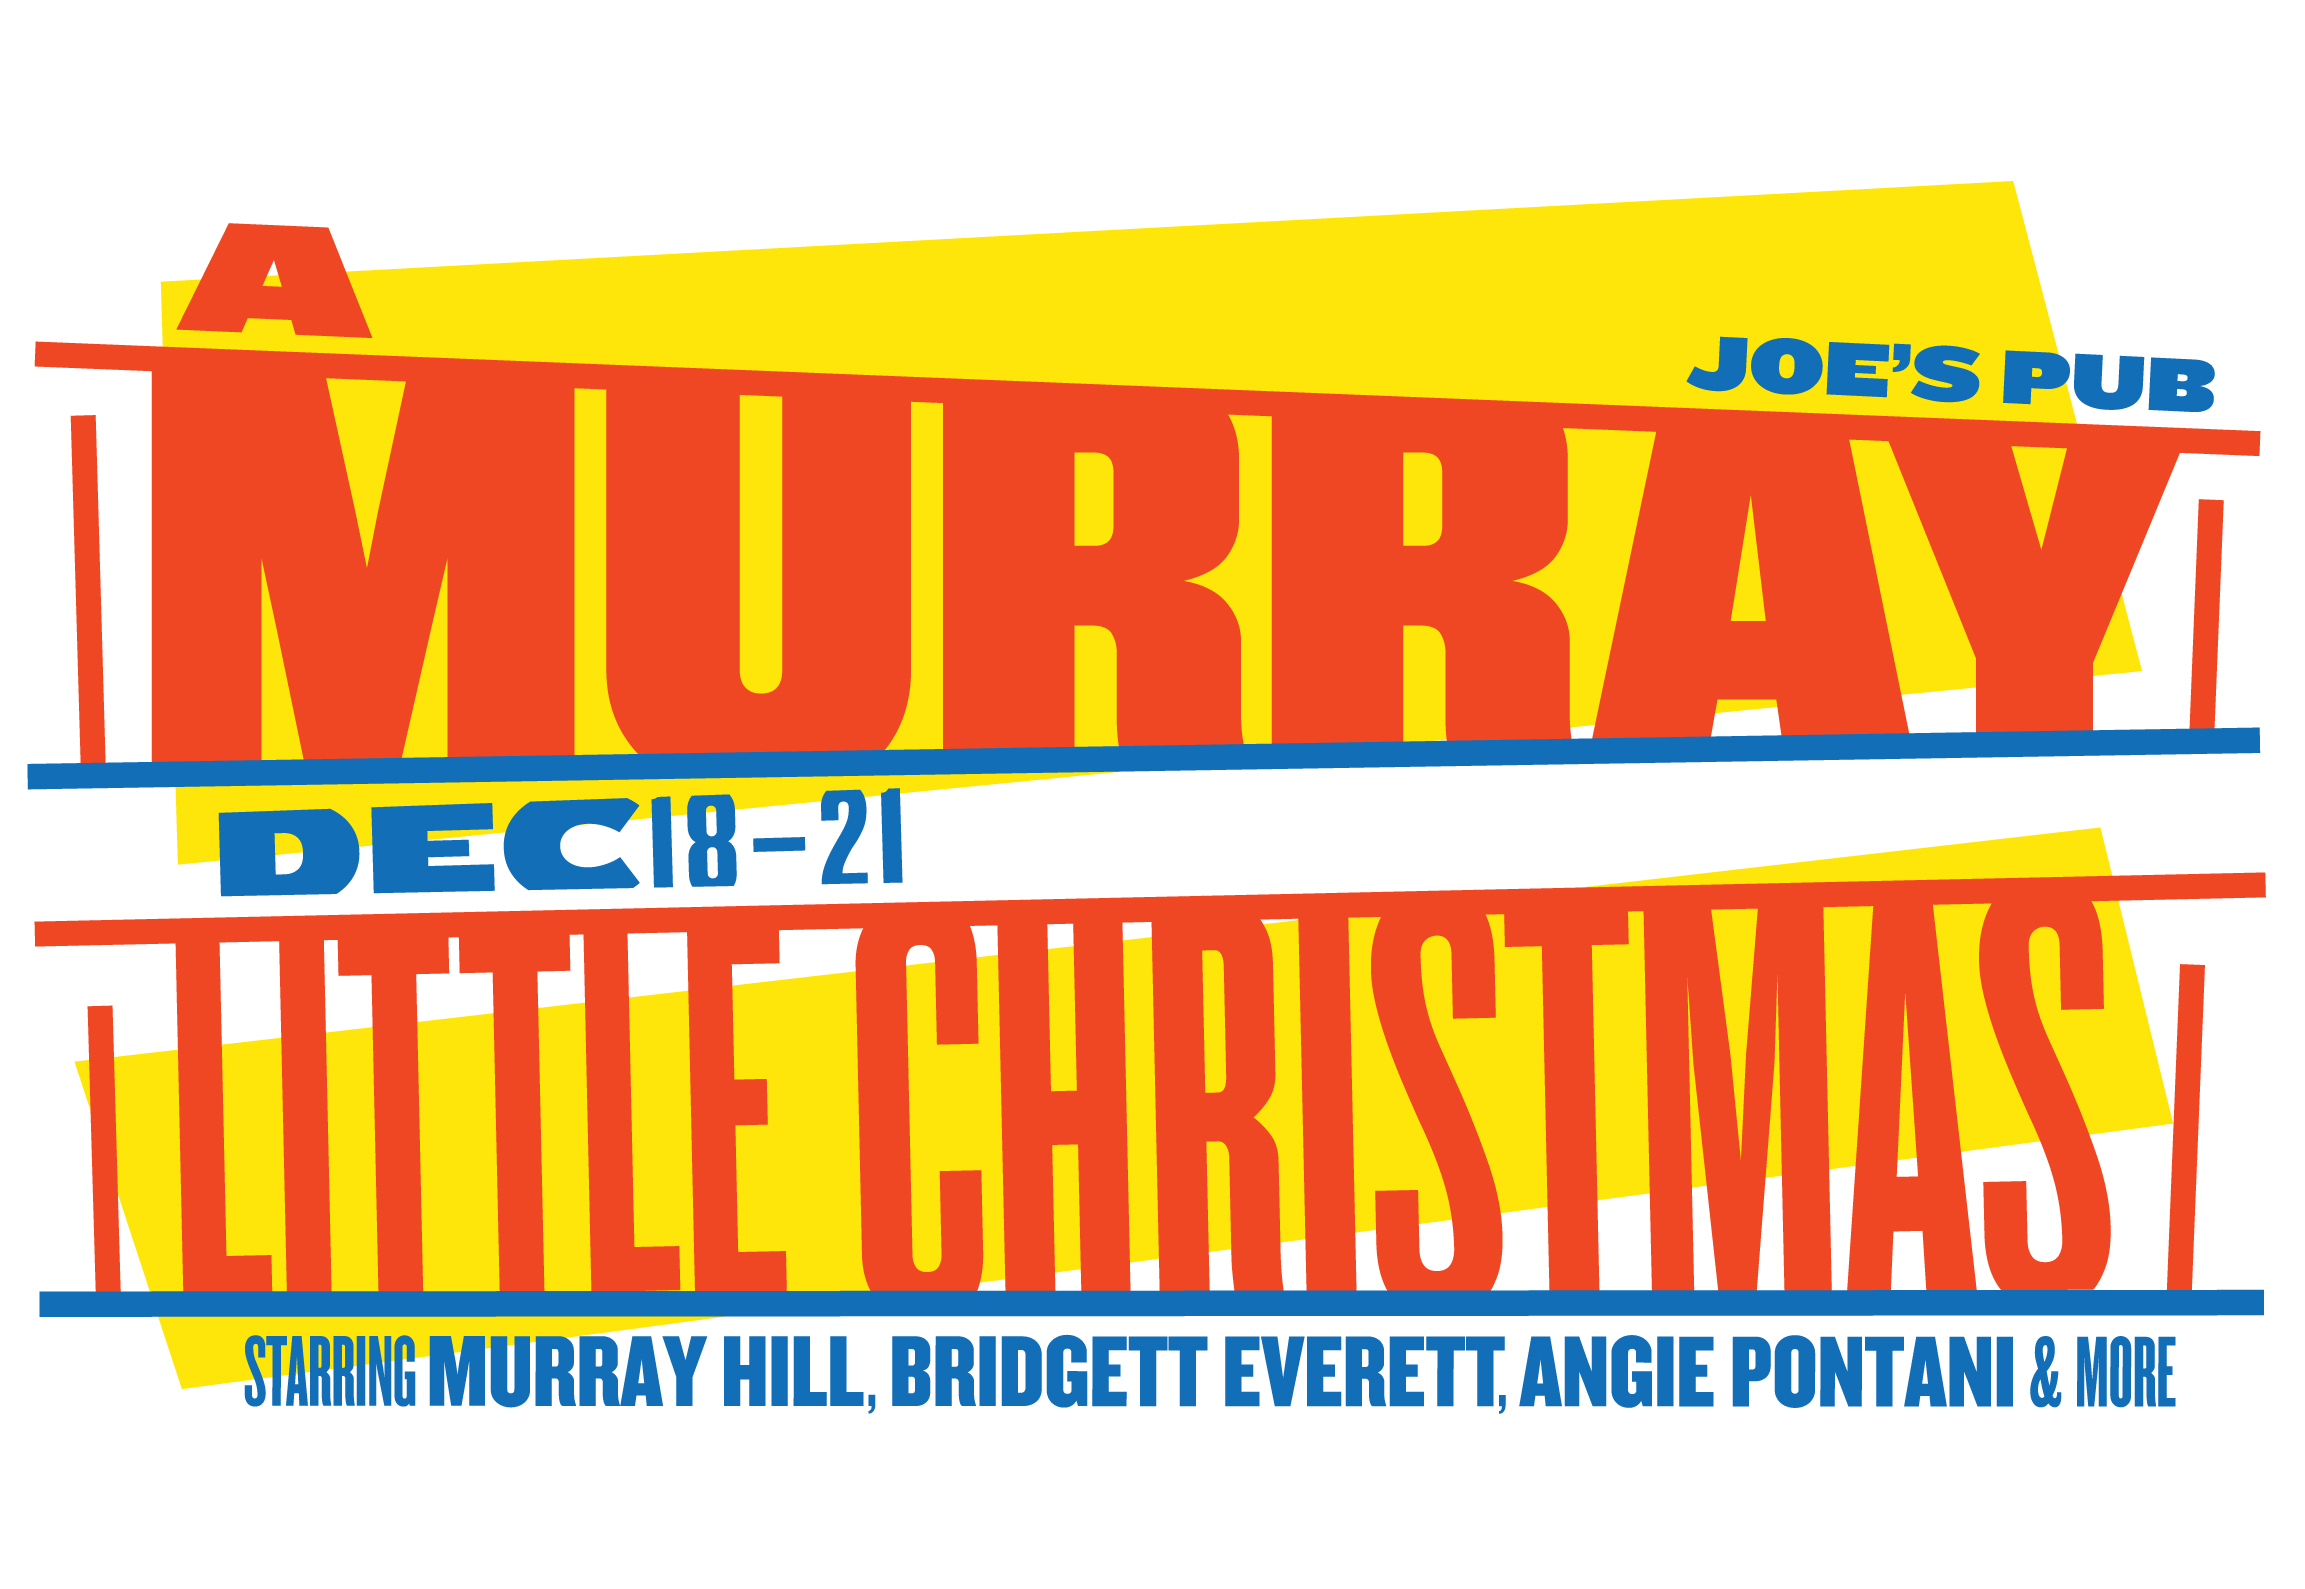 A Murray Little Christmas